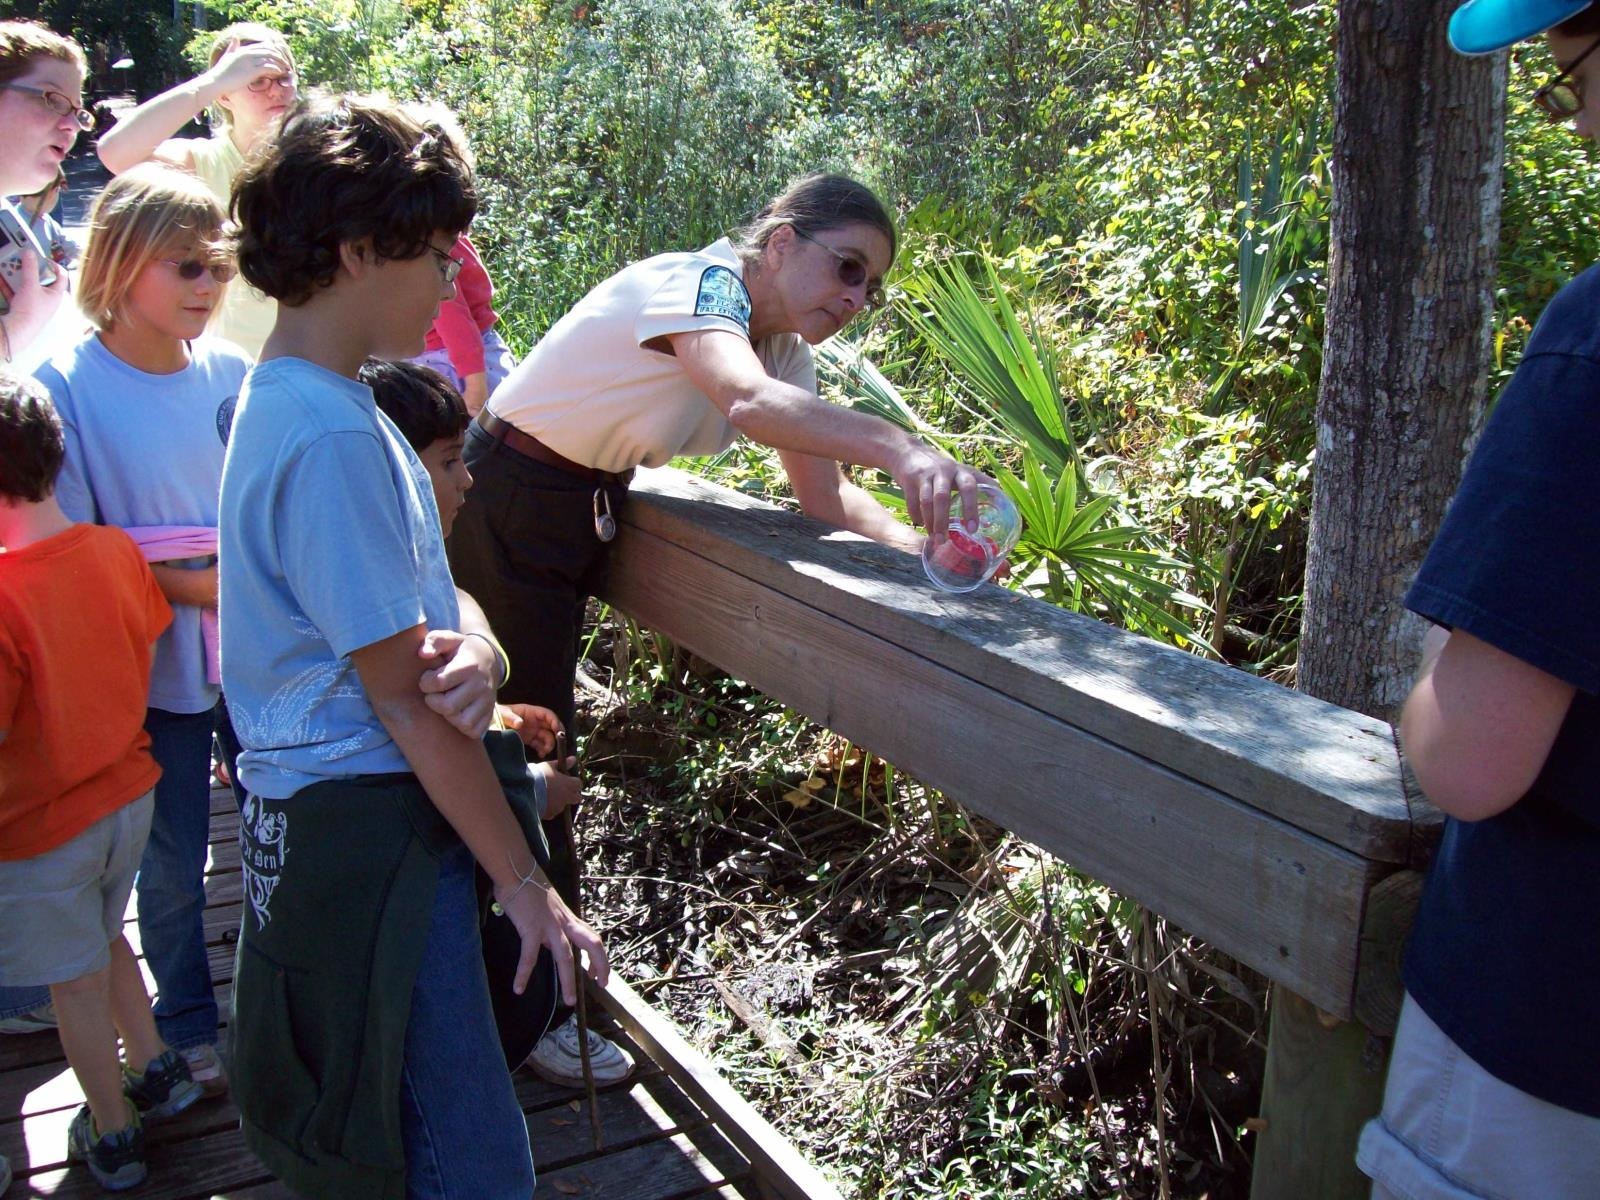 Volunteer naturalist collect a creature on a boardwalk in front of kids